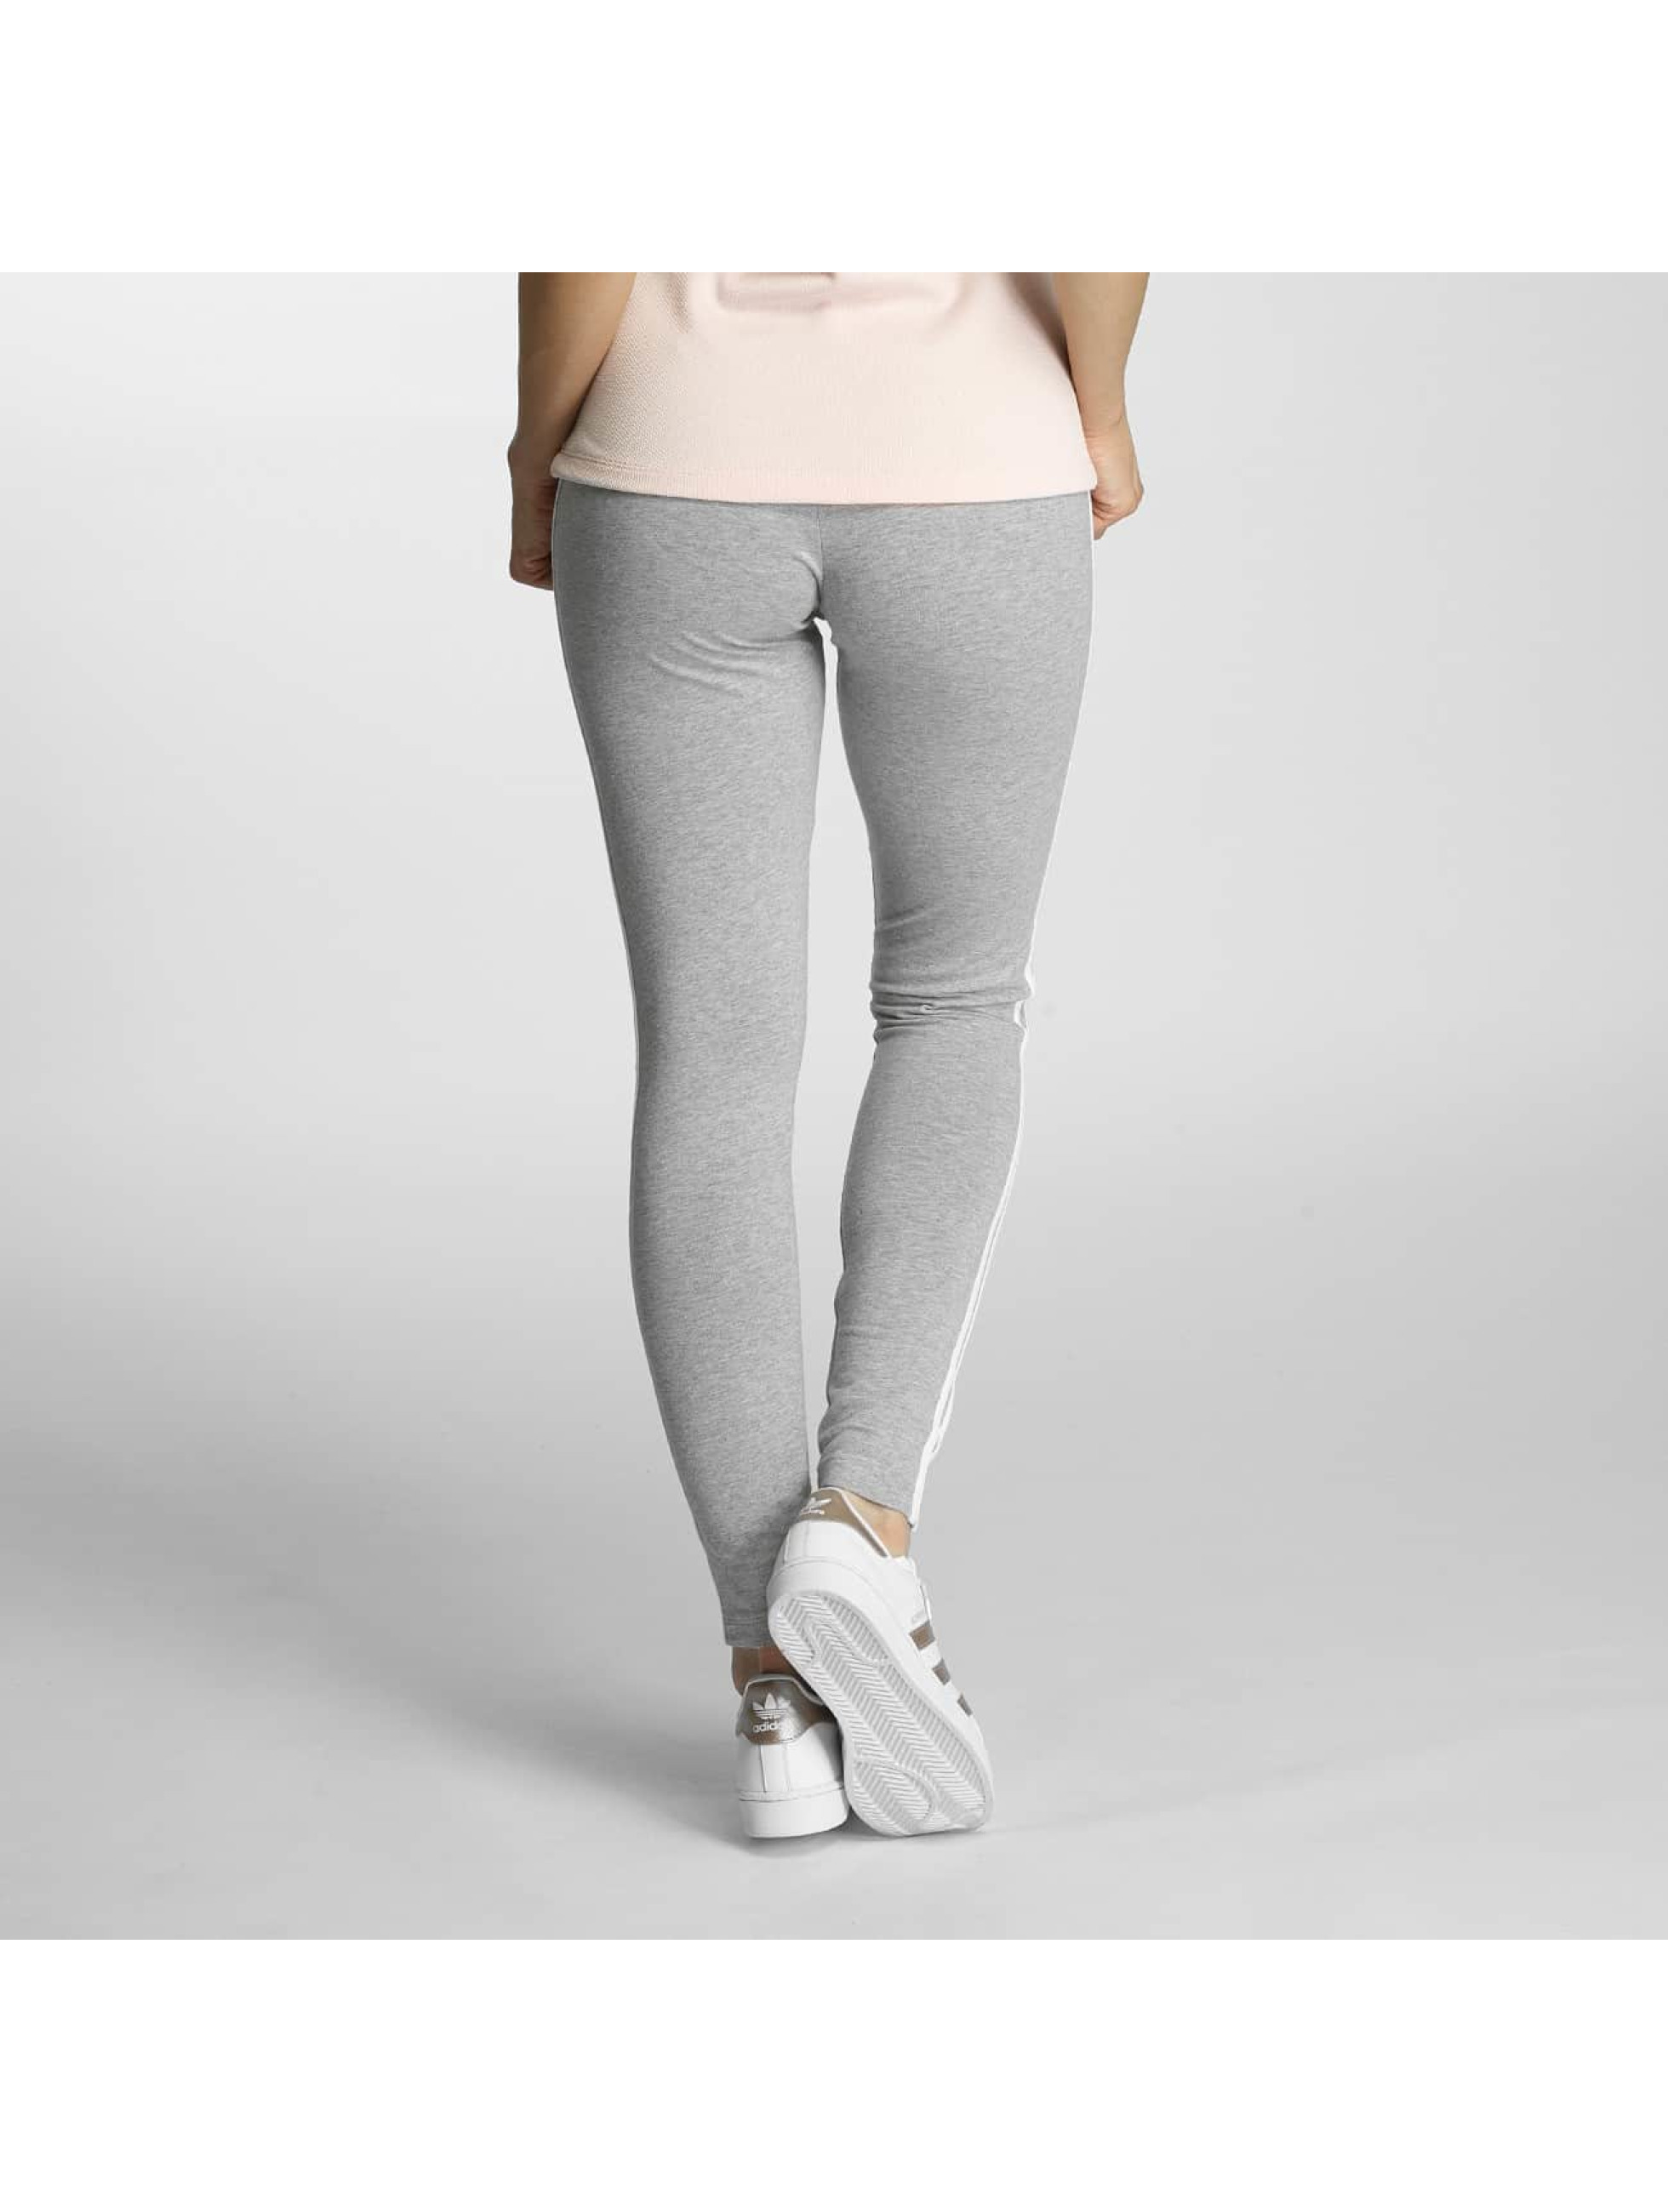 adidas Legging/Tregging 3 Stripes grey